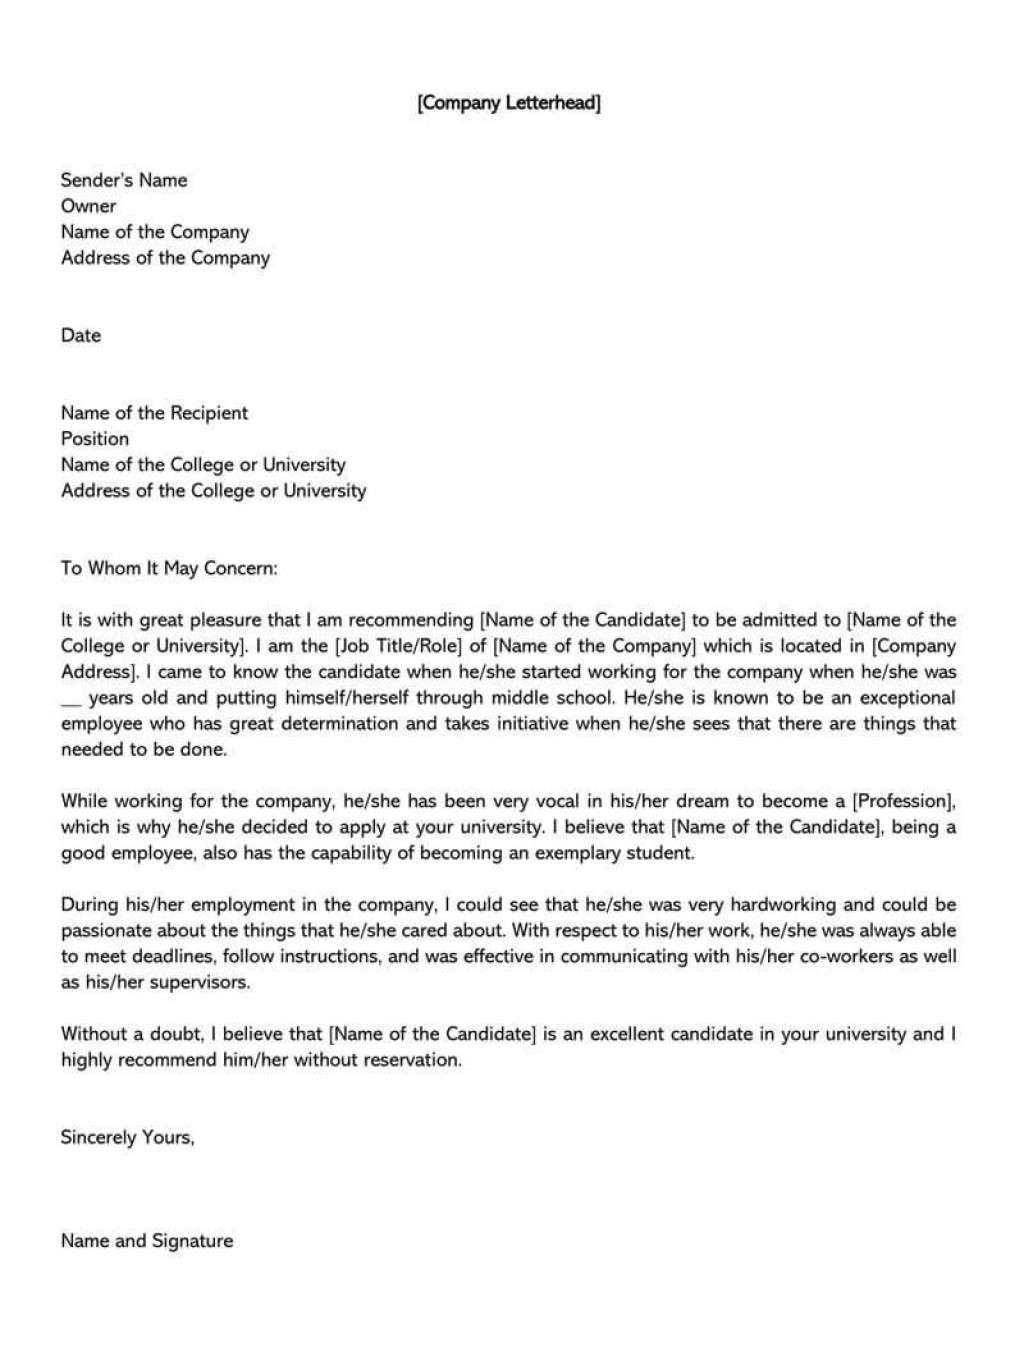 003 Rare Letter Of Recommendation Template For College Student Inspiration  Sample From ProfessorLarge